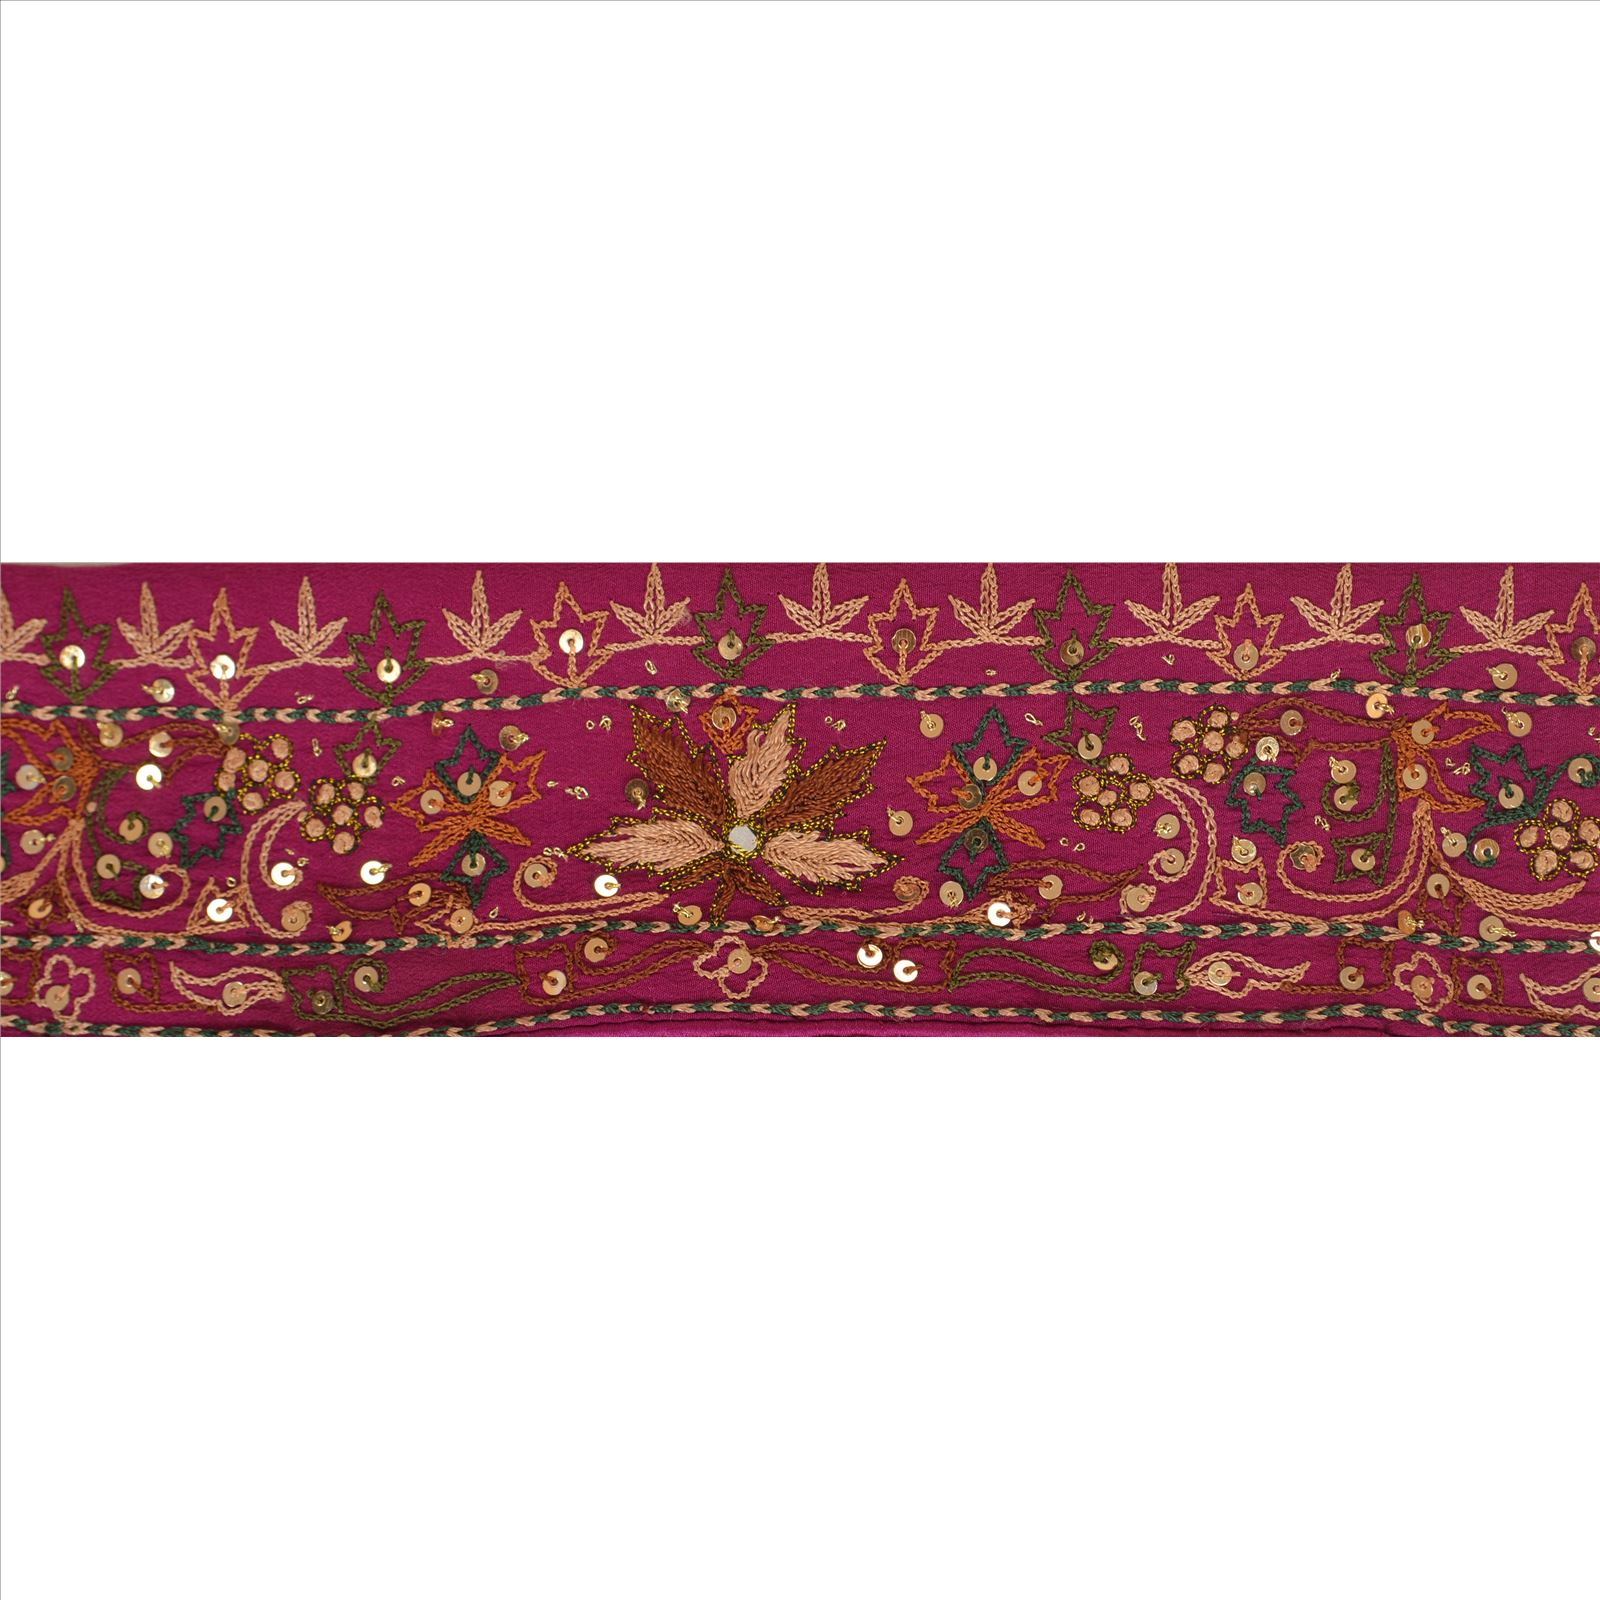 Sanskriti Vintage Sari Border Hand Beaded Craft Trim Sewing Purple Lace Modern And Elegant In Fashion Embellishments & Finishes